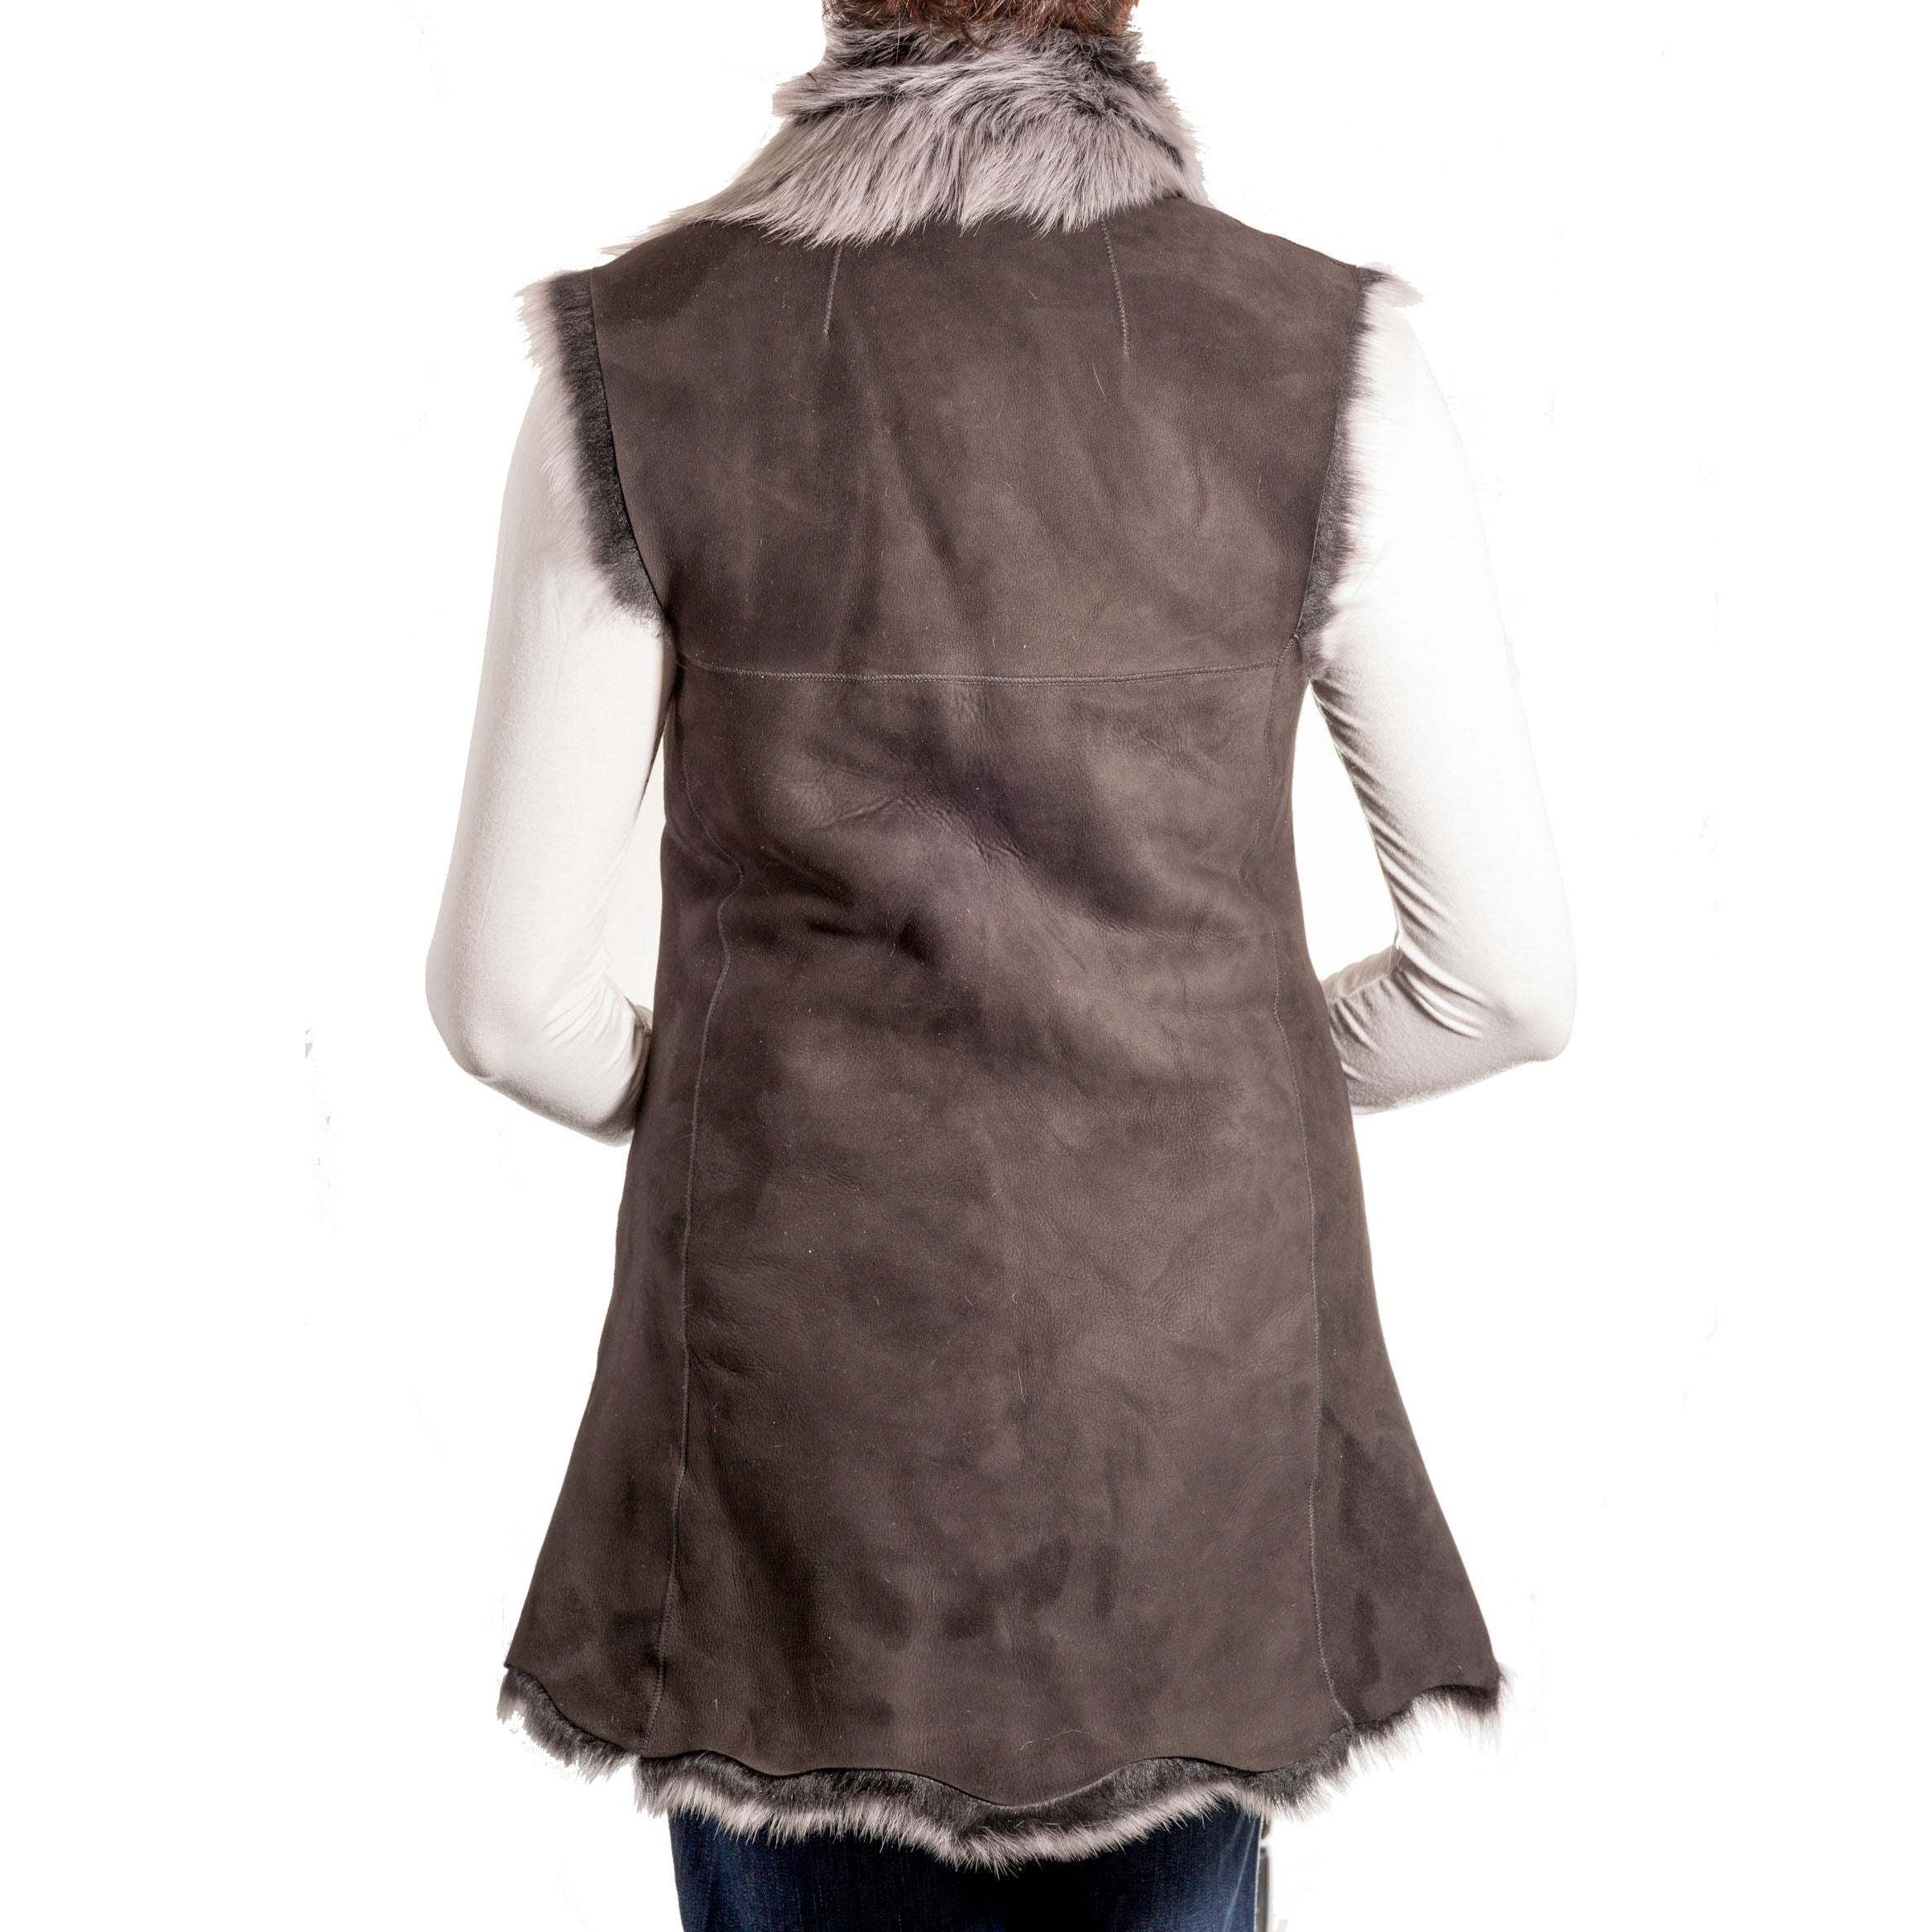 Womens luxury waterfall style toscana sleeveless body warmer winter long gilets. Available in Suede and Nappa leather finishing